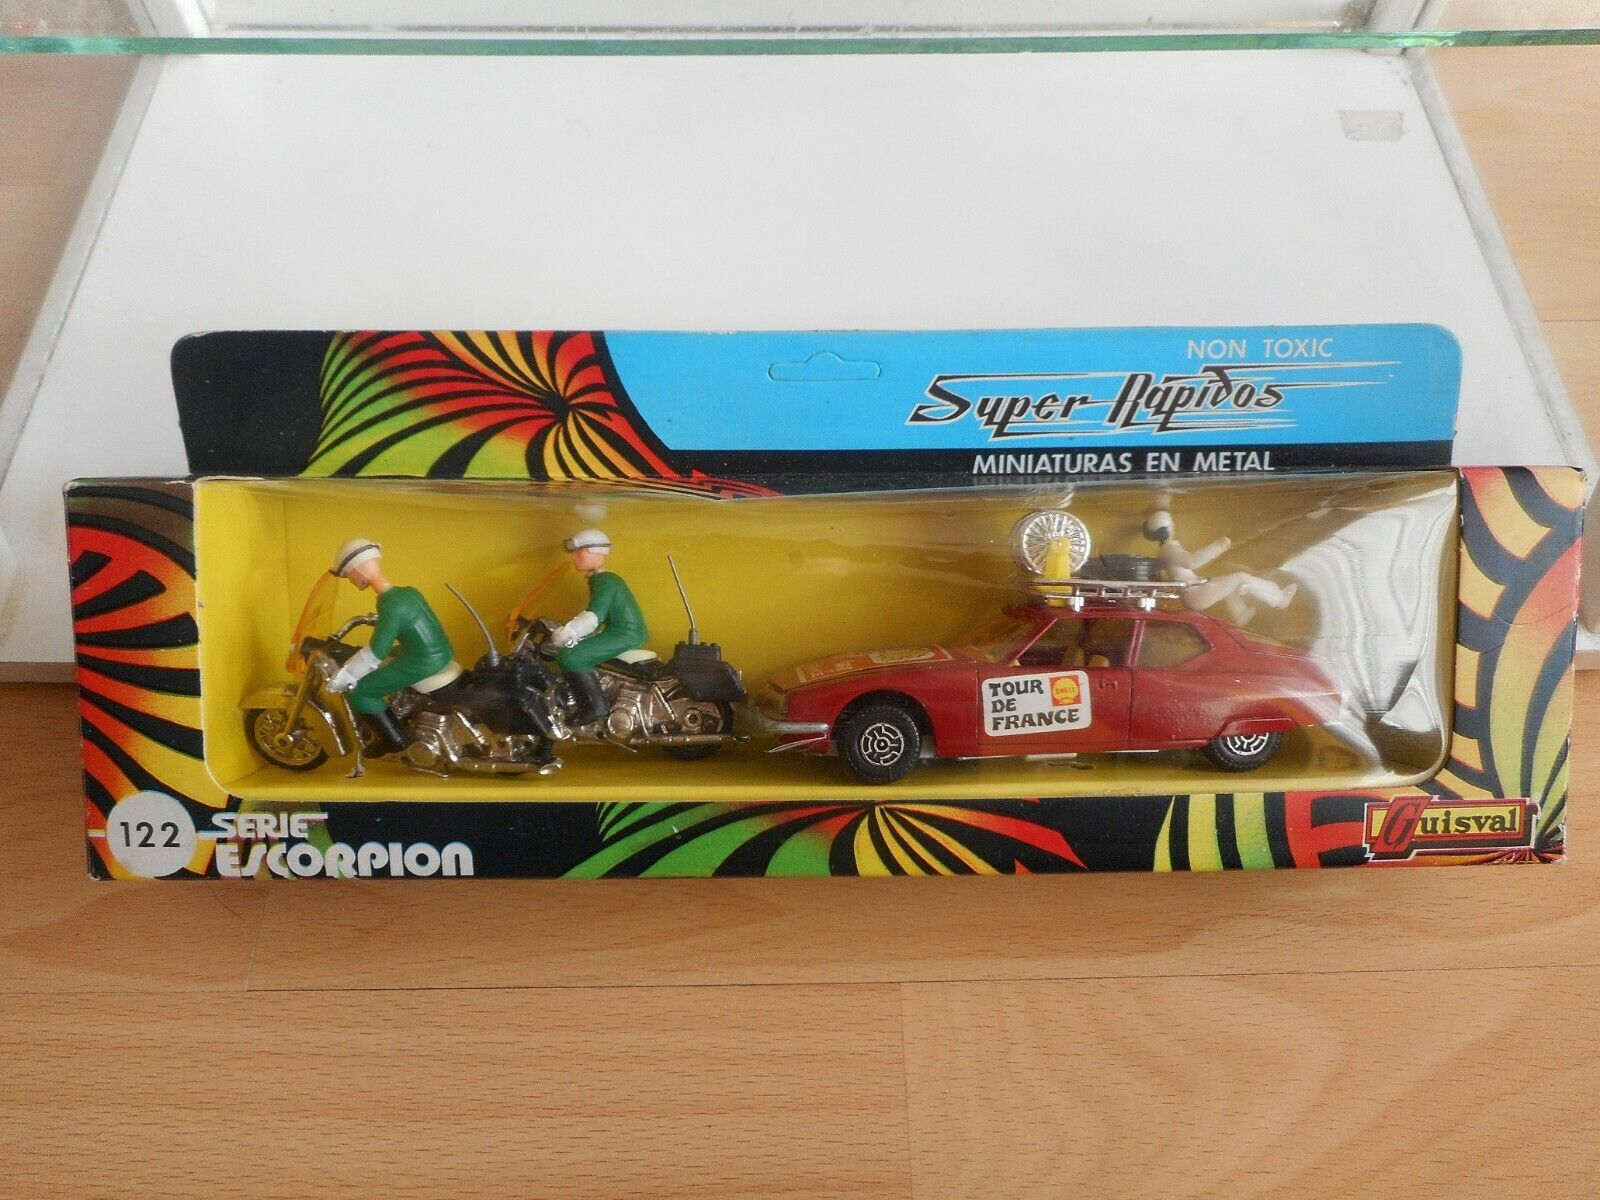 Guisval Serie Escorpion Control Official Tour de France set on 1 37 in Box